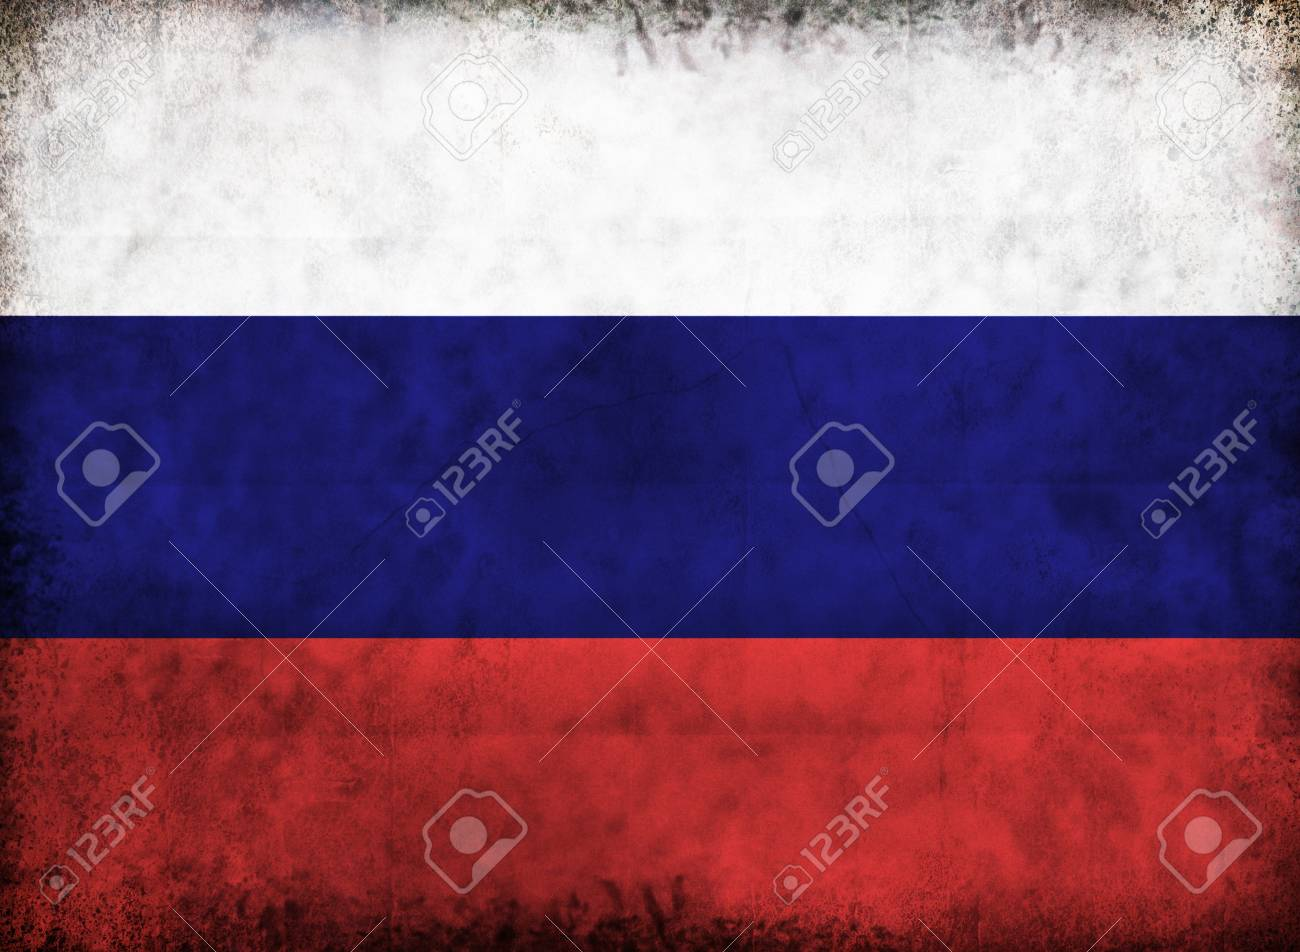 Grunge European flag from old dirty paper background. Stock Photo - 12838978